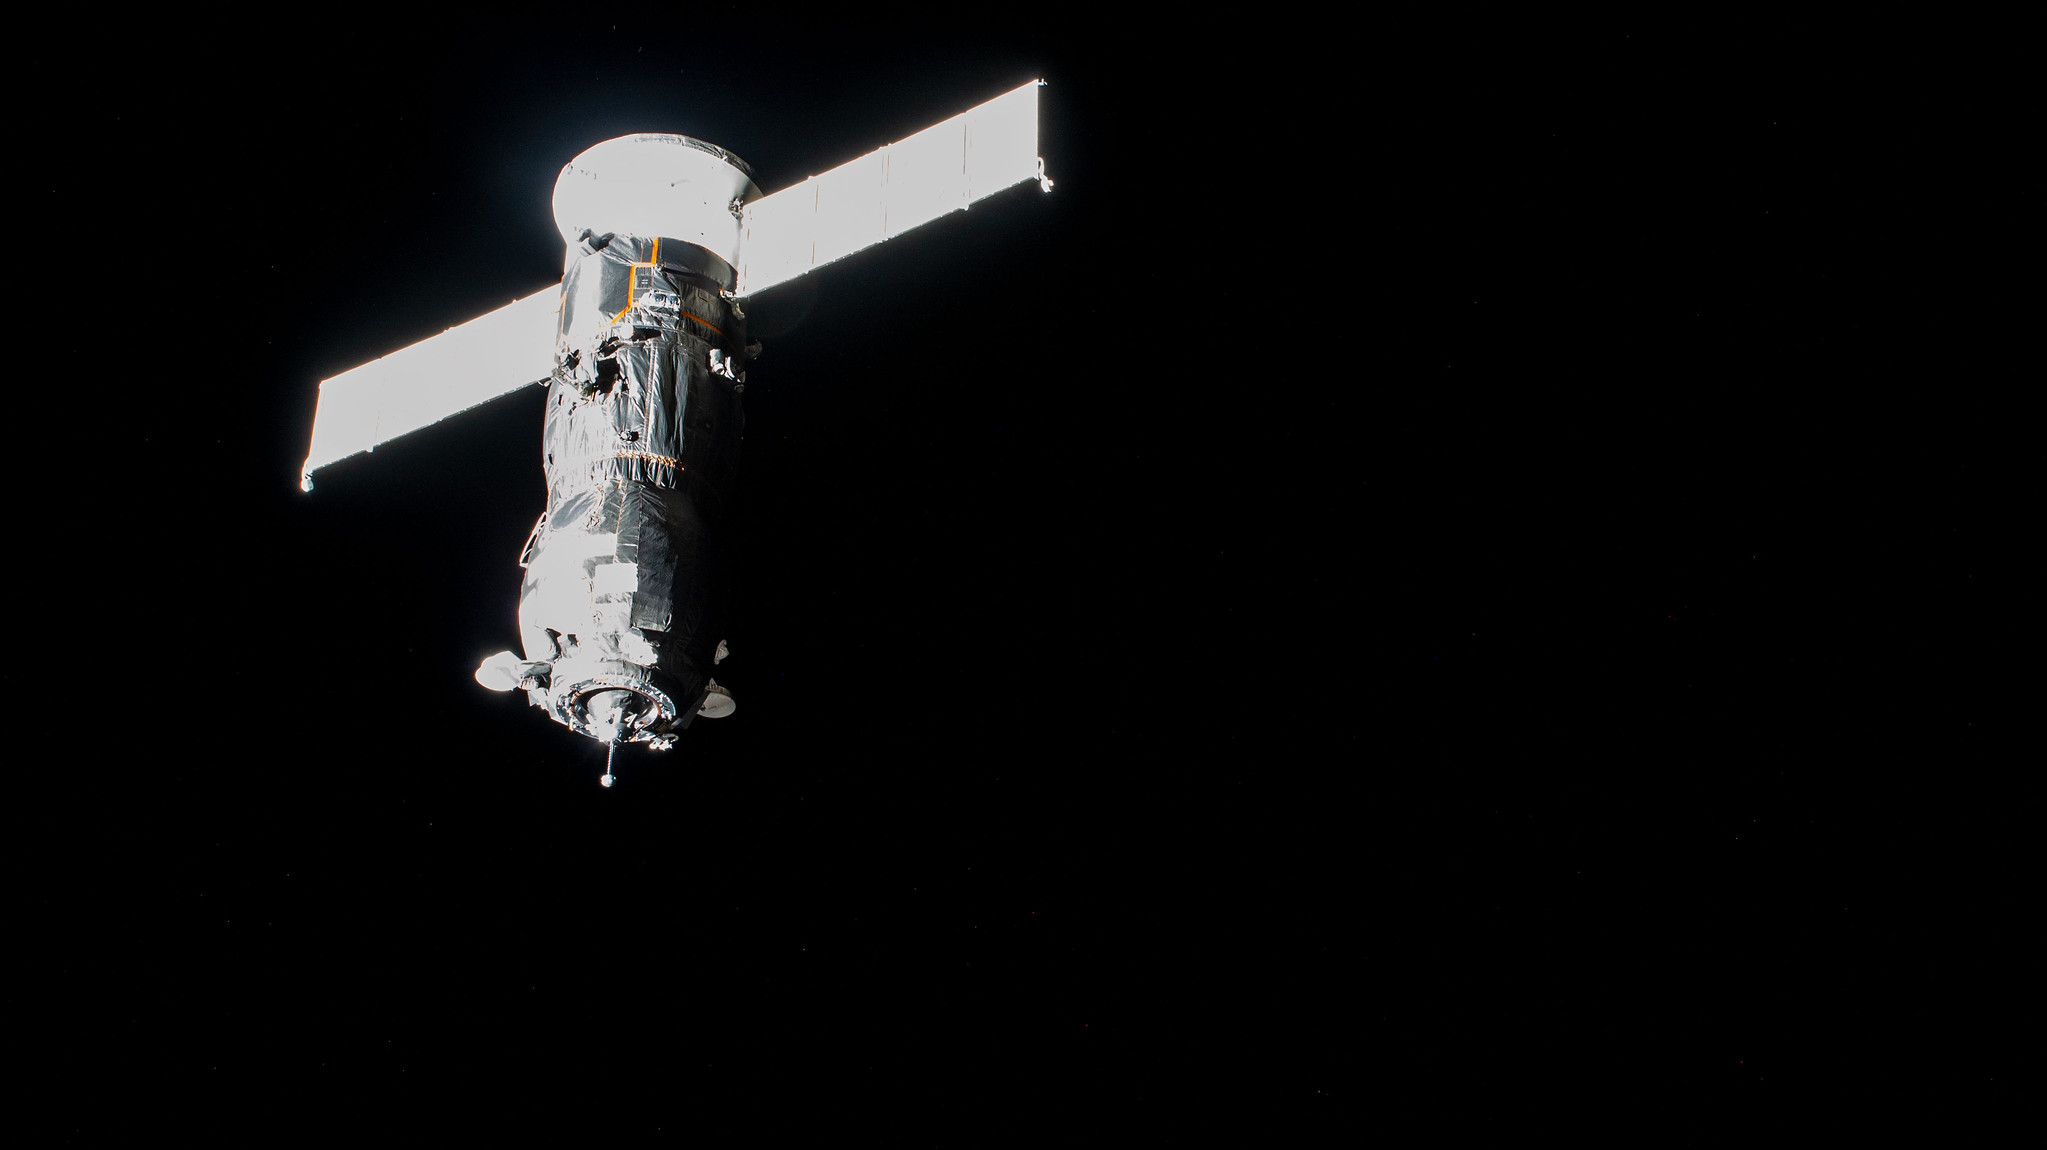 Progress MS-17 making over 24 hour long relocation at space station